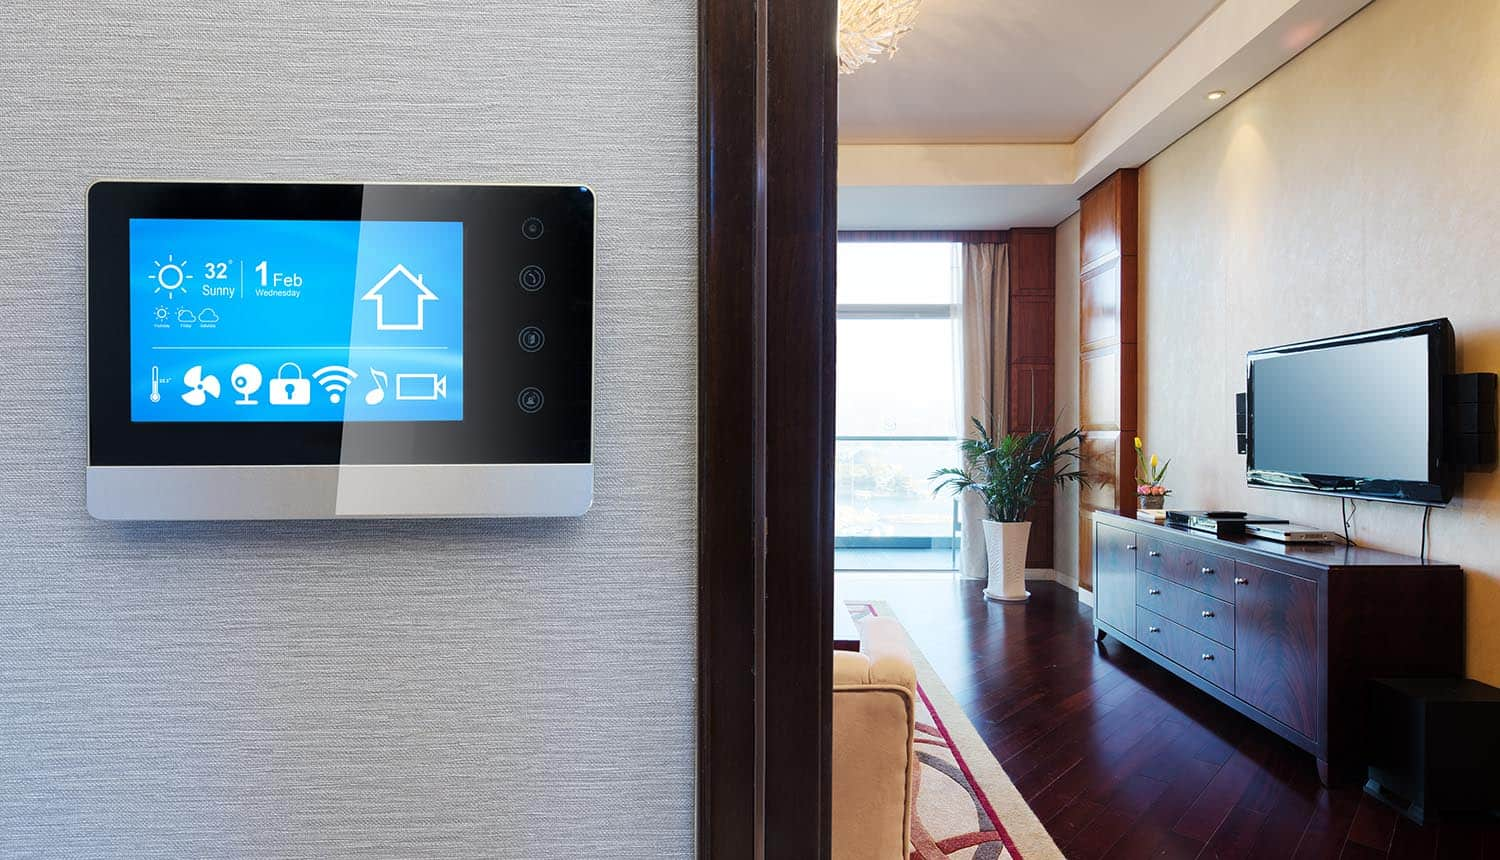 Smart home app on screen in living room showing new IoT privacy issues raised on smart devices leaking data to tech giants